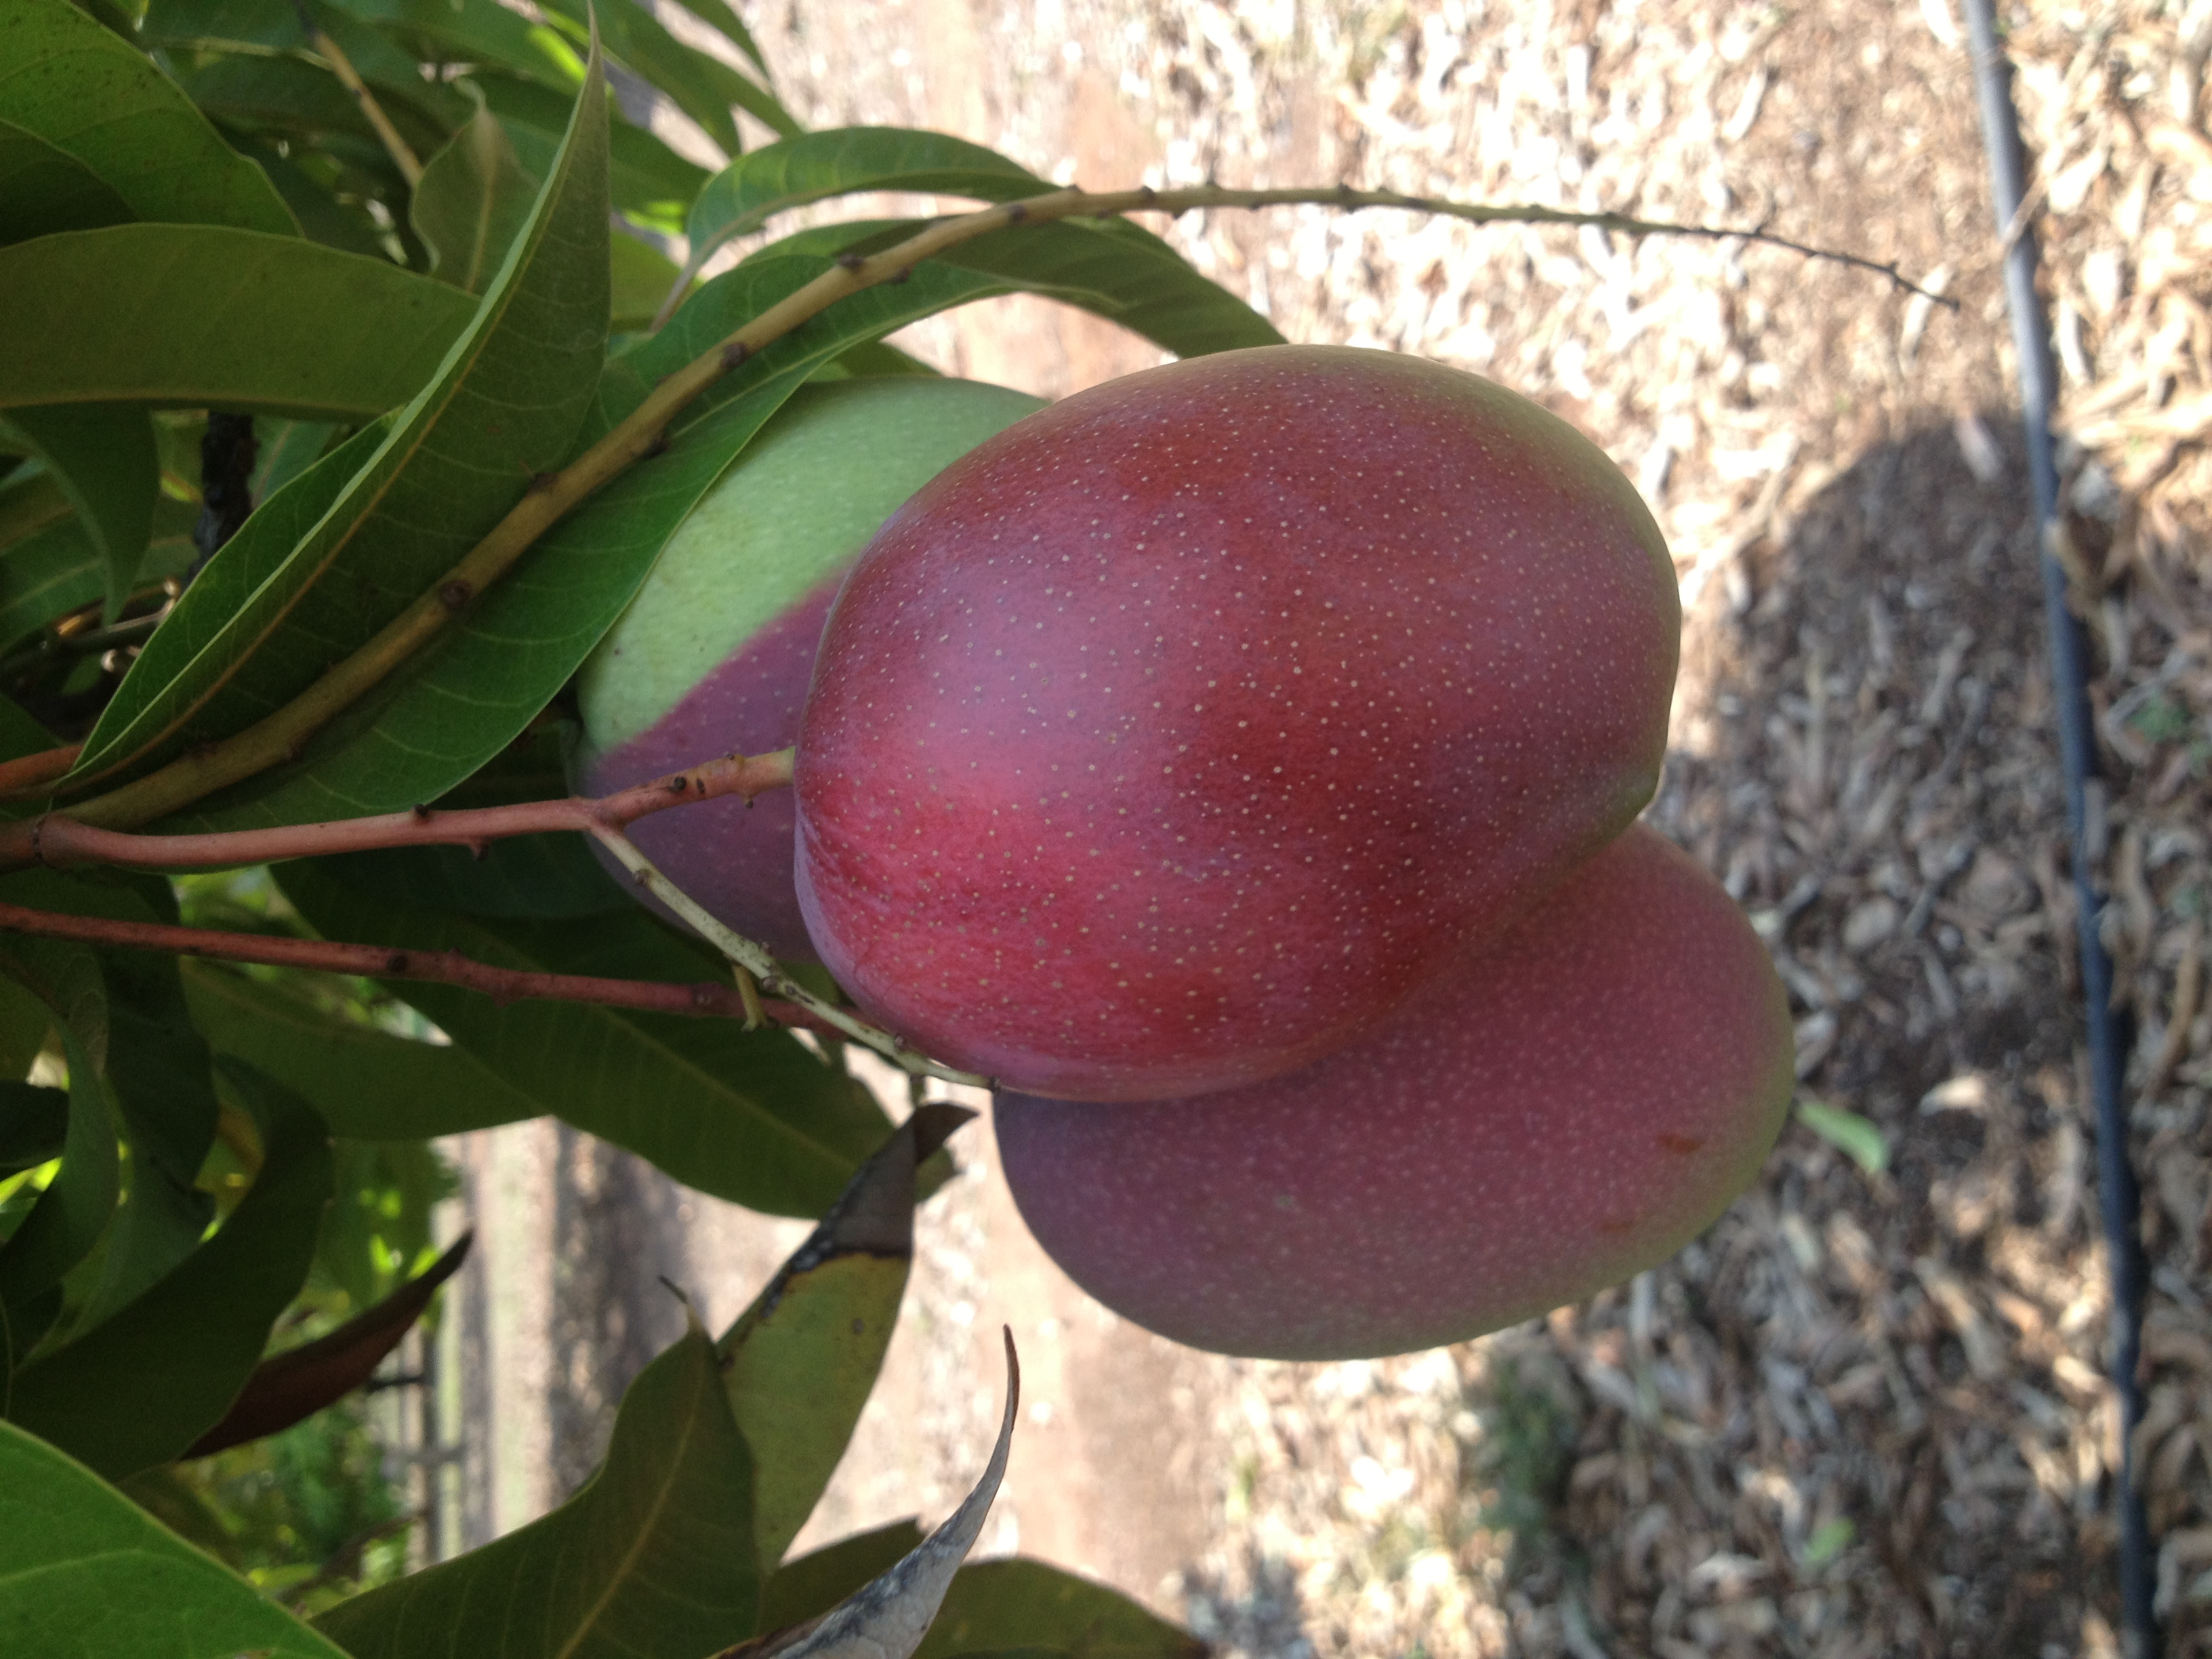 Irwin mangoes on tree - Berry Springs, Northern Territory